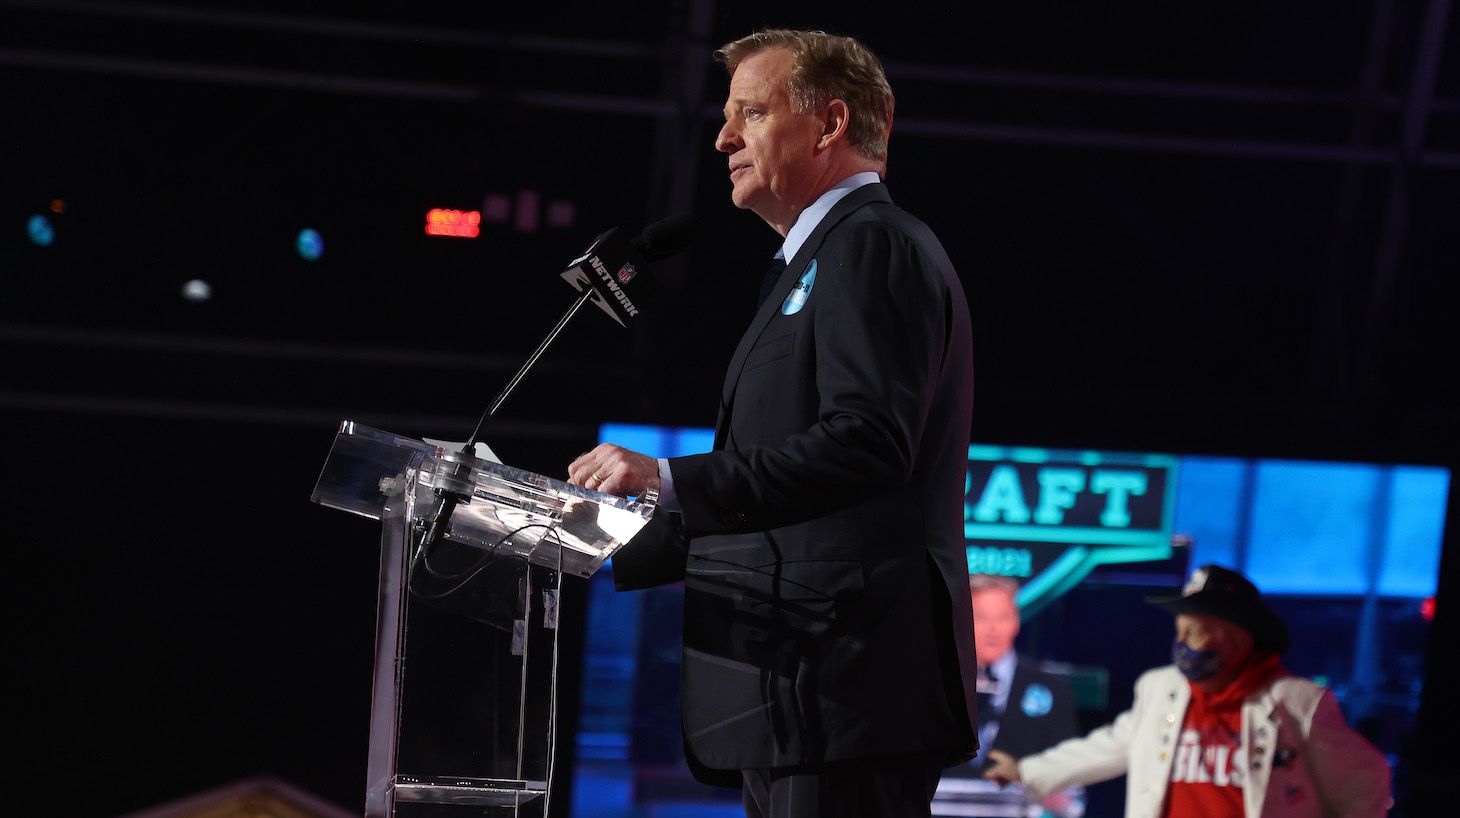 CLEVELAND, OHIO - APRIL 29: NFL Commissioner Roger Goodell announces Gregory Rousseau being selected 30th by the Buffalo Bills during round one of the 2021 NFL Draft at the Great Lakes Science Center on April 29, 2021 in Cleveland, Ohio. (Photo by Gregory Shamus/Getty Images)